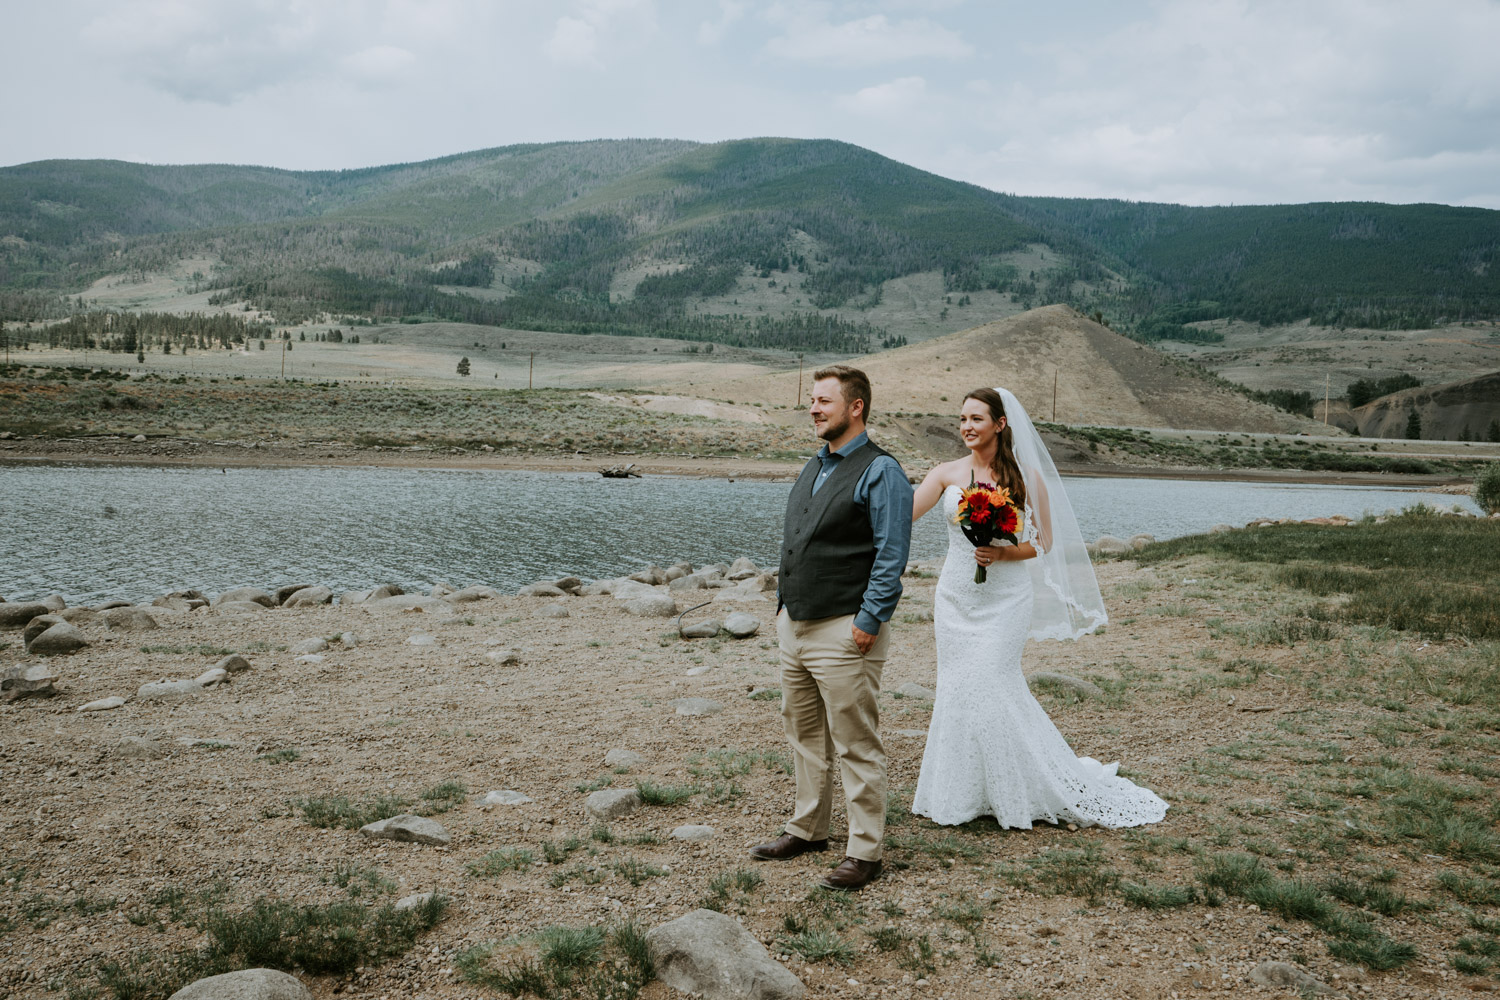 Colorado Wedding Photographer, Denver Botanic Gardens Wedding, Intimate Wedding, Windy Point Campground, lake dillon, elopement photographer, first look